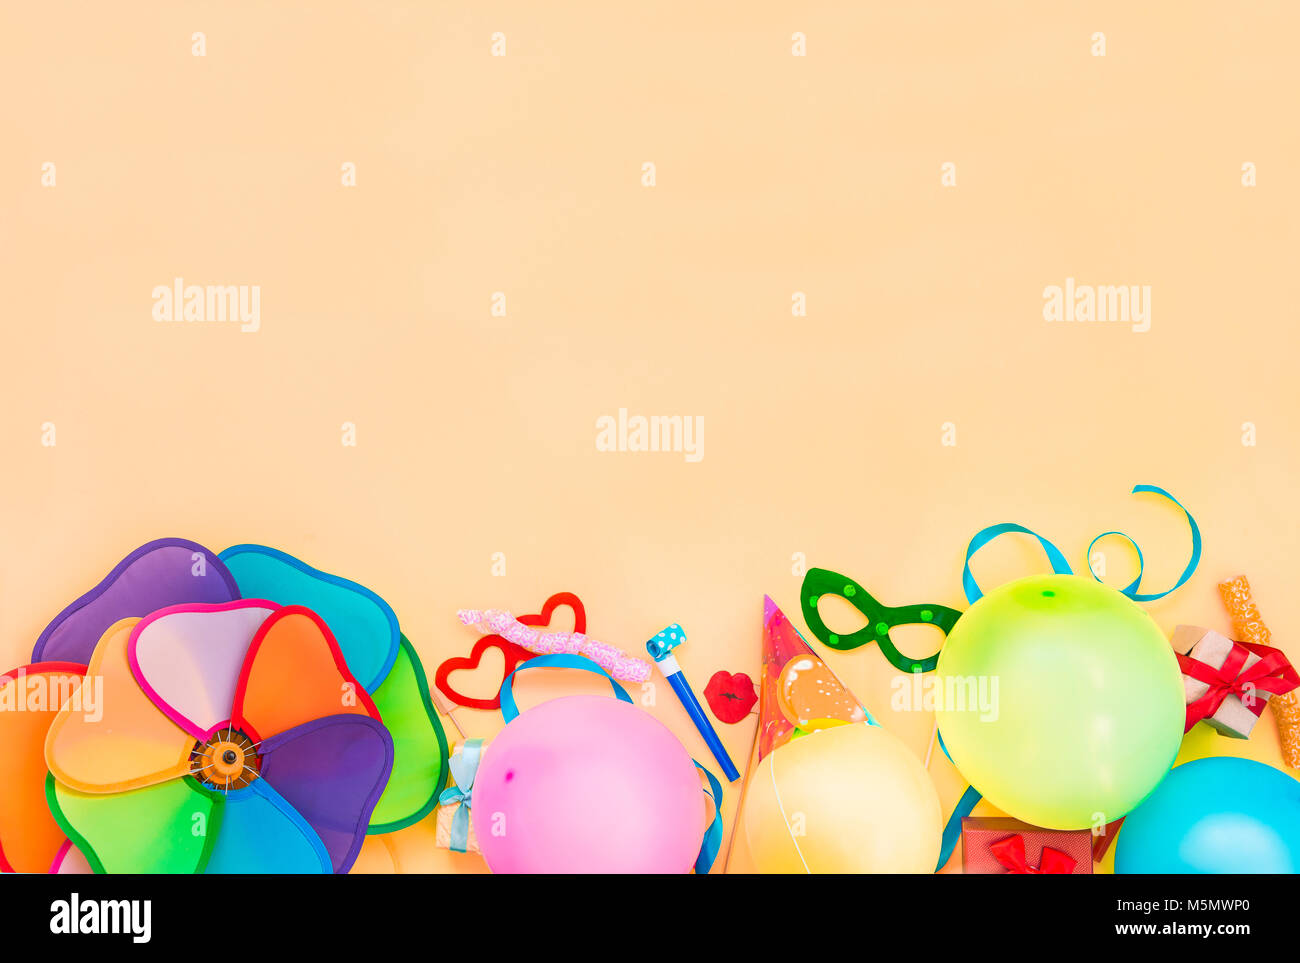 Top view bright party tools and decoration - baloons, funny carnival masks, festive tinsel on peach color background. - Stock Image